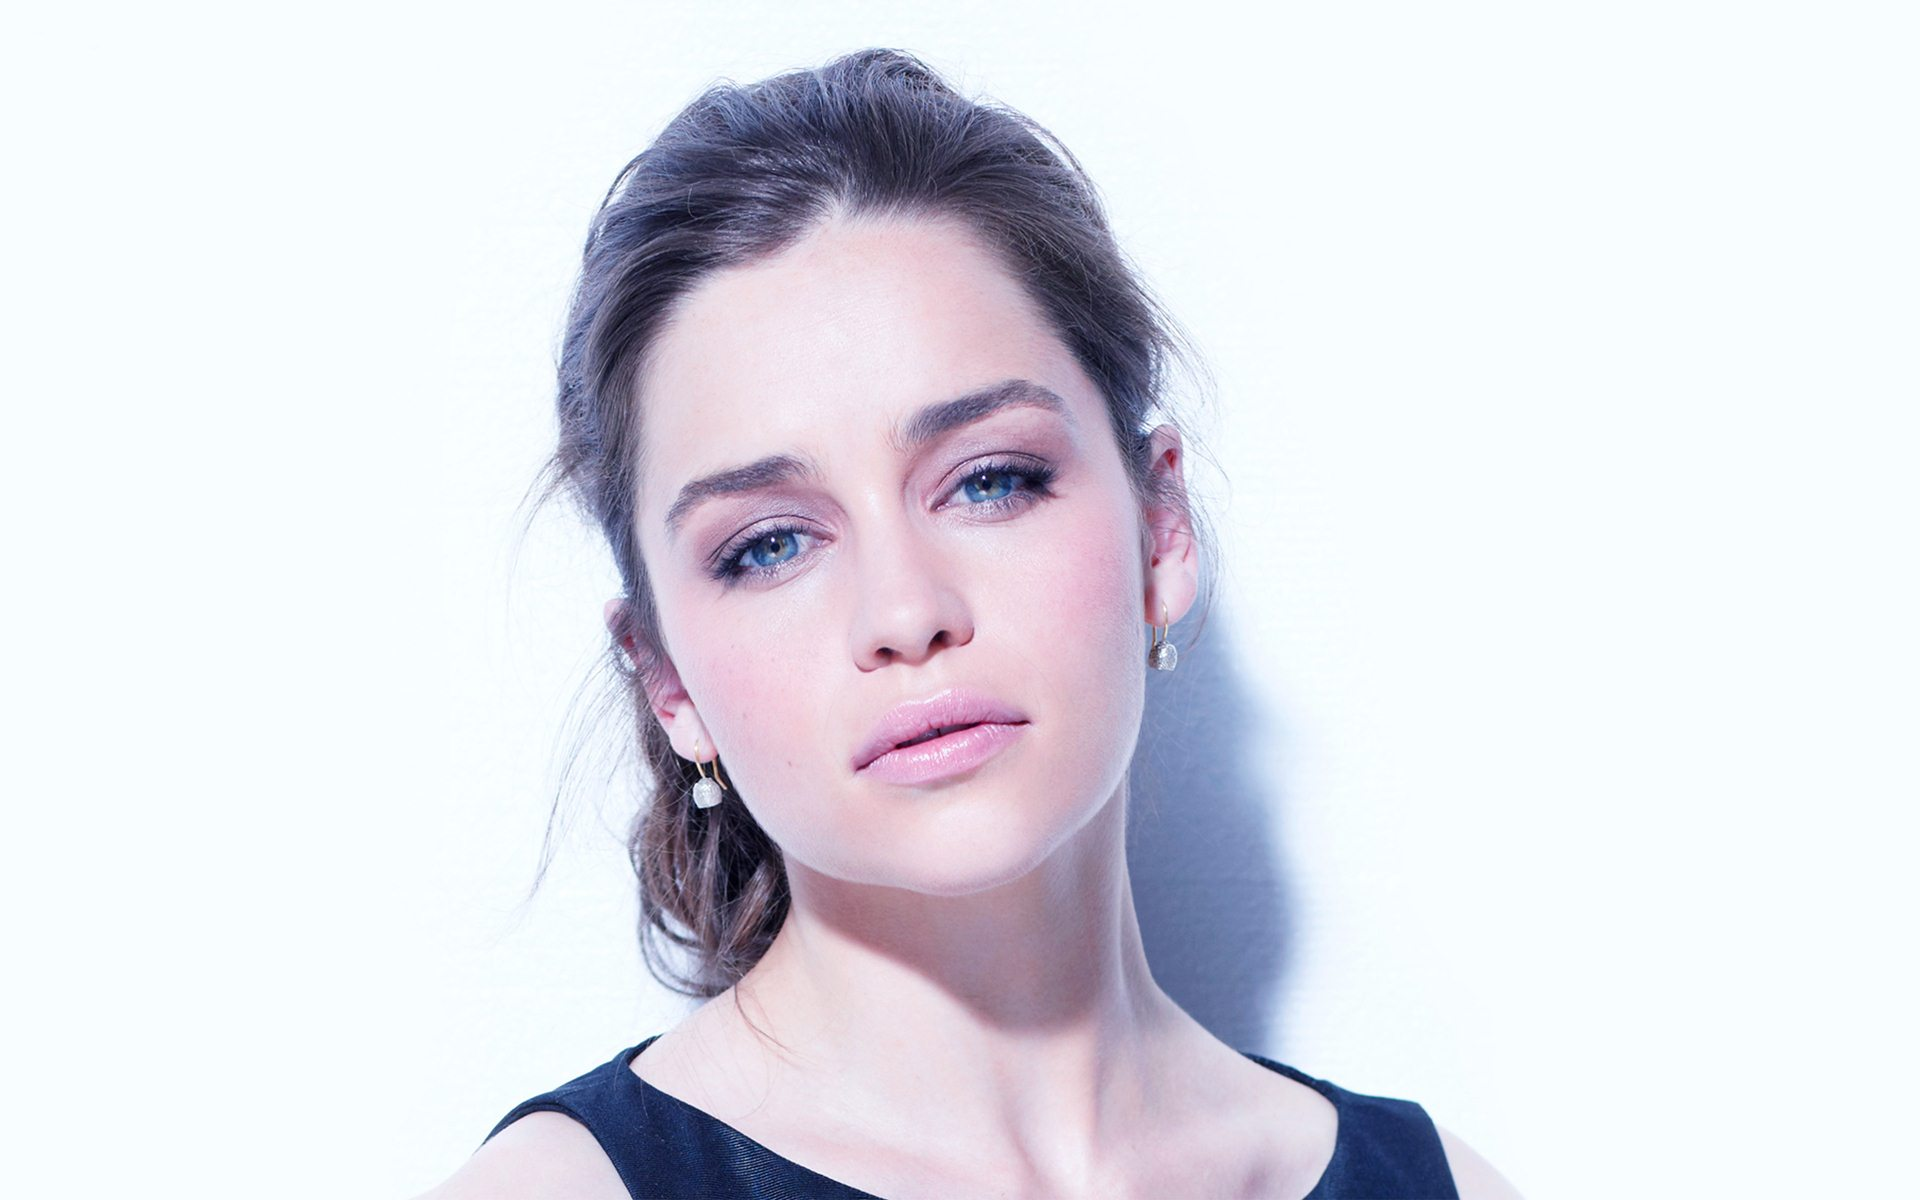 Emilia Clarke Wallpapers Pictures Images